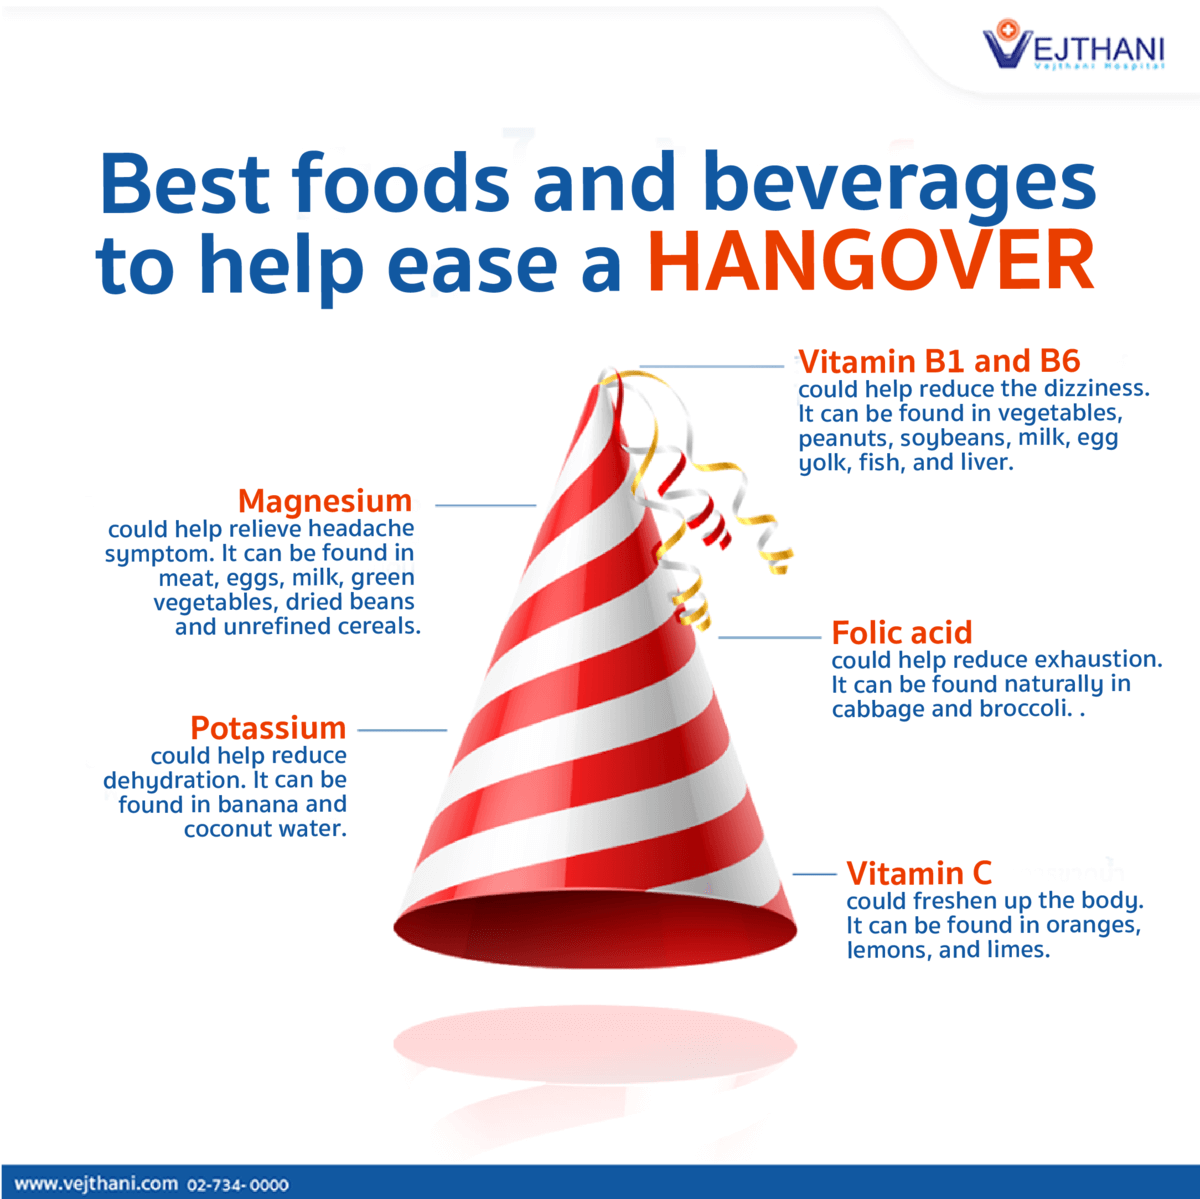 Best Foods and Beverages to Help Ease a Hangover